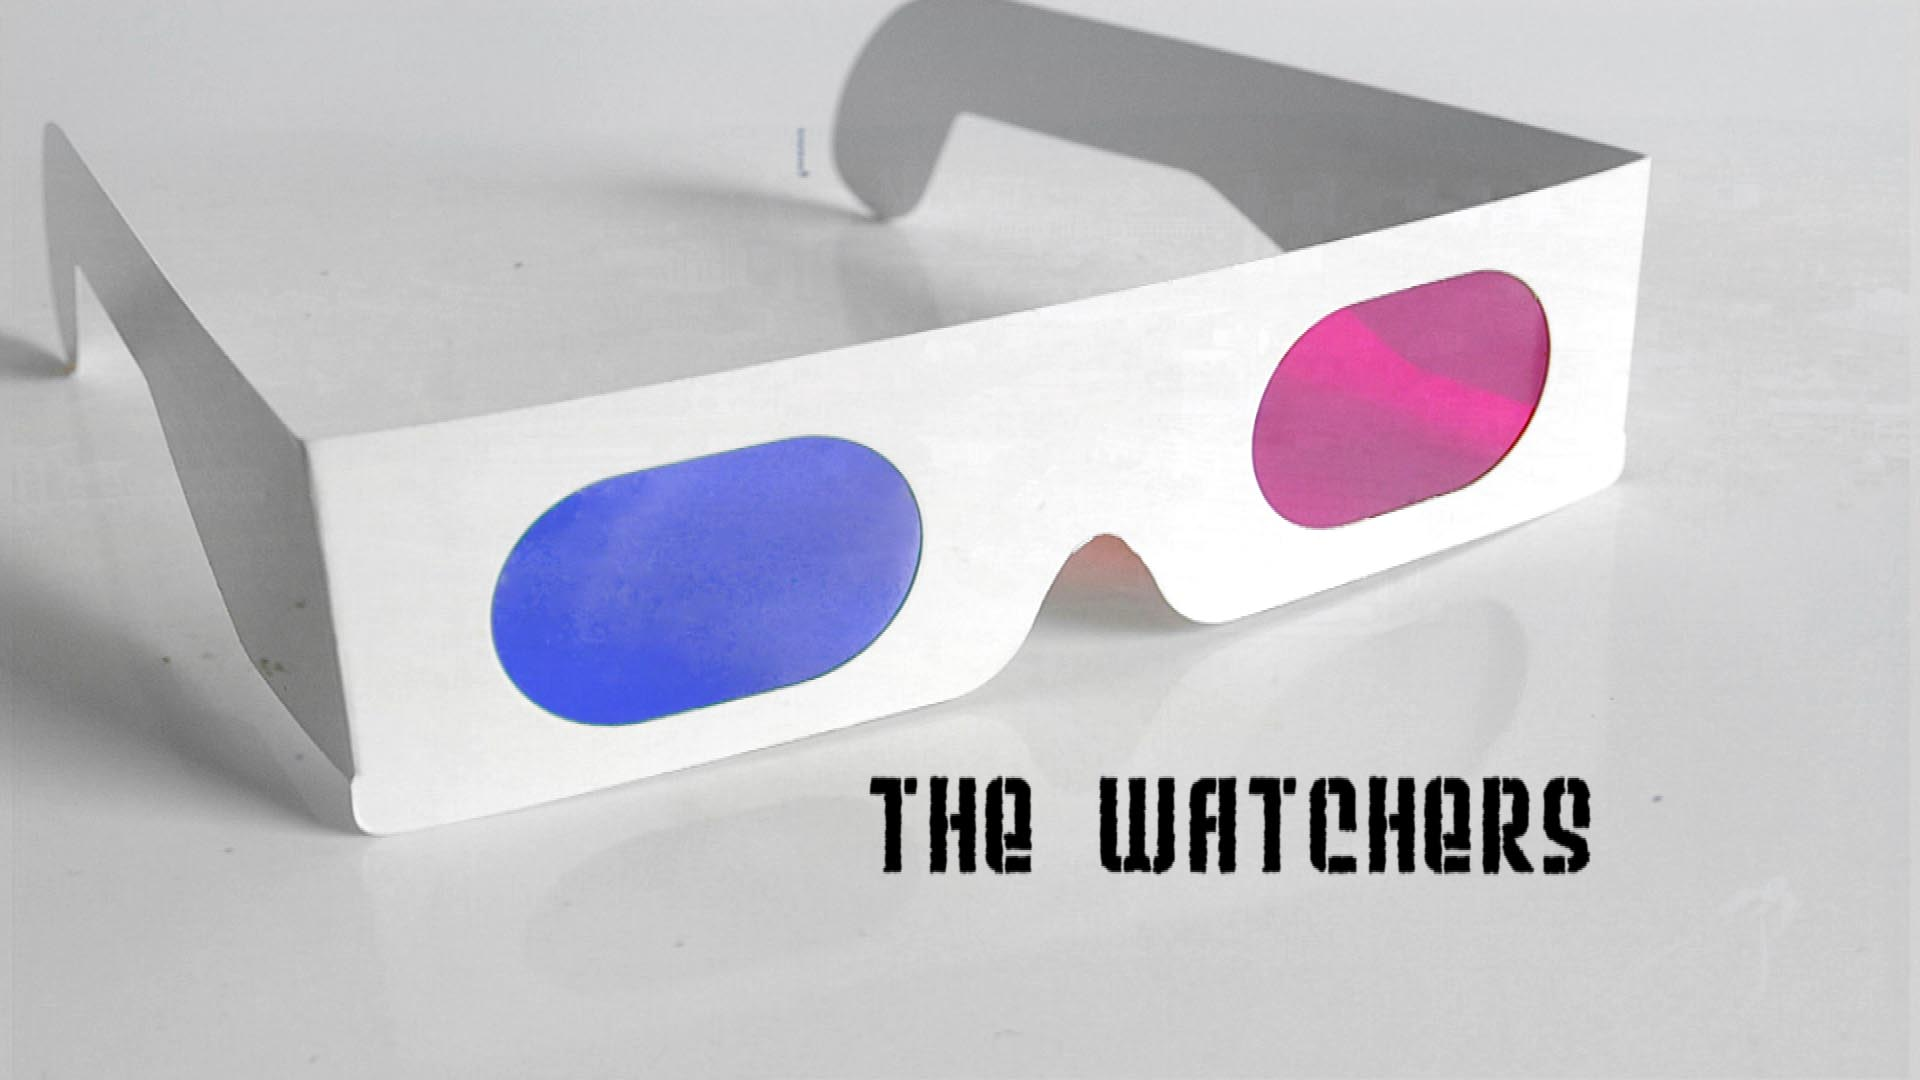 The Watchers Film Show